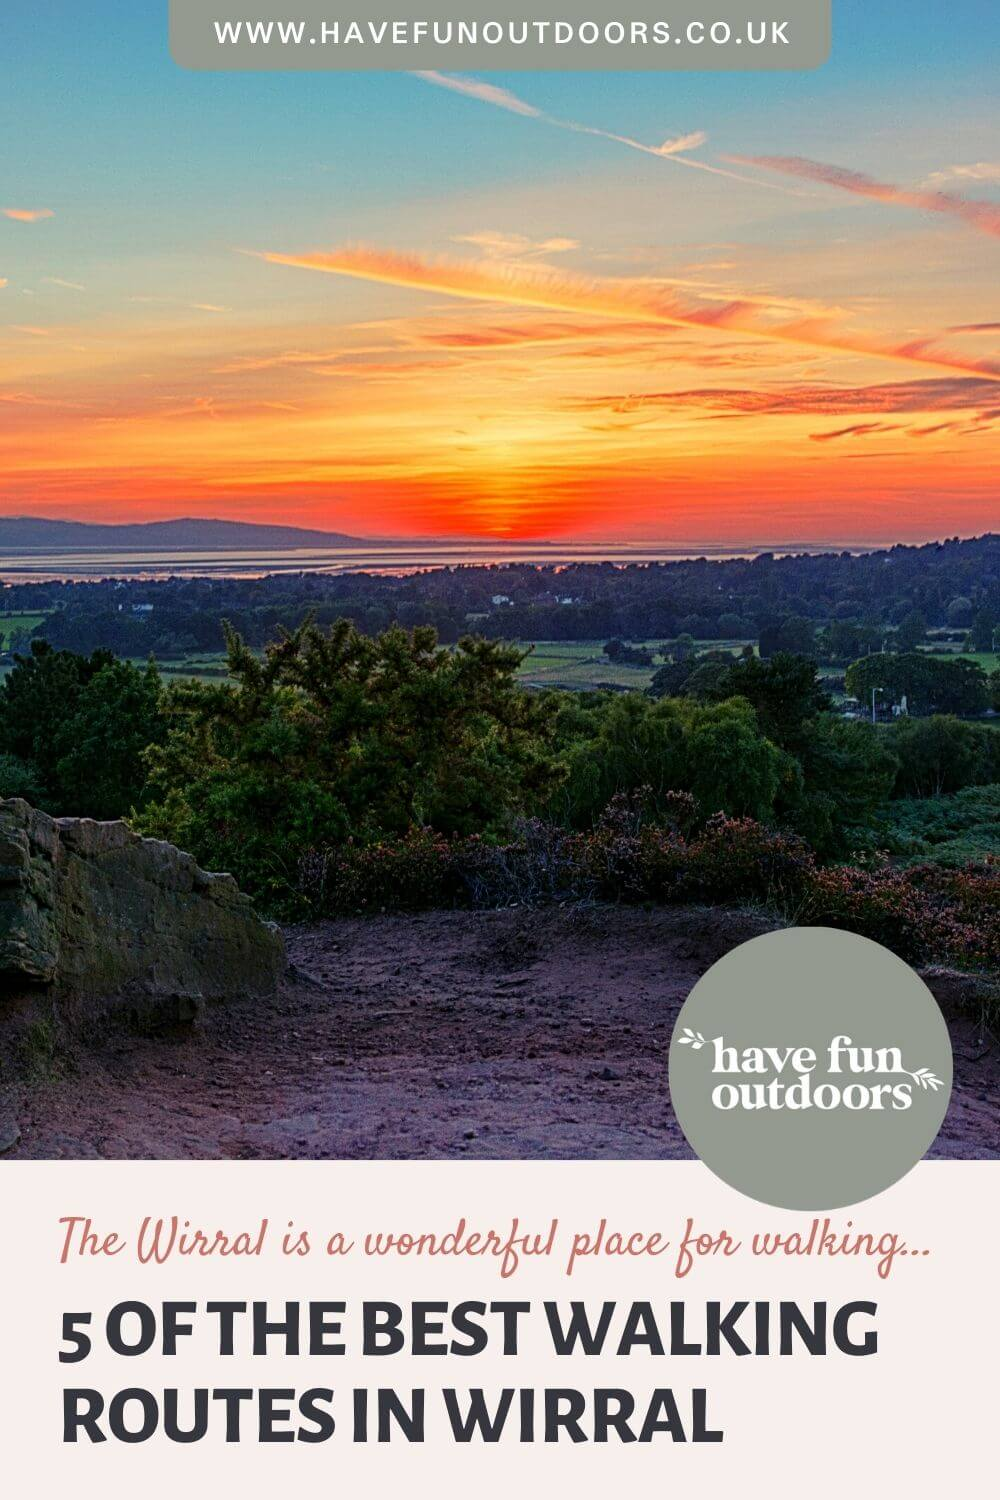 5 of the Best Walking Routes in Wirral